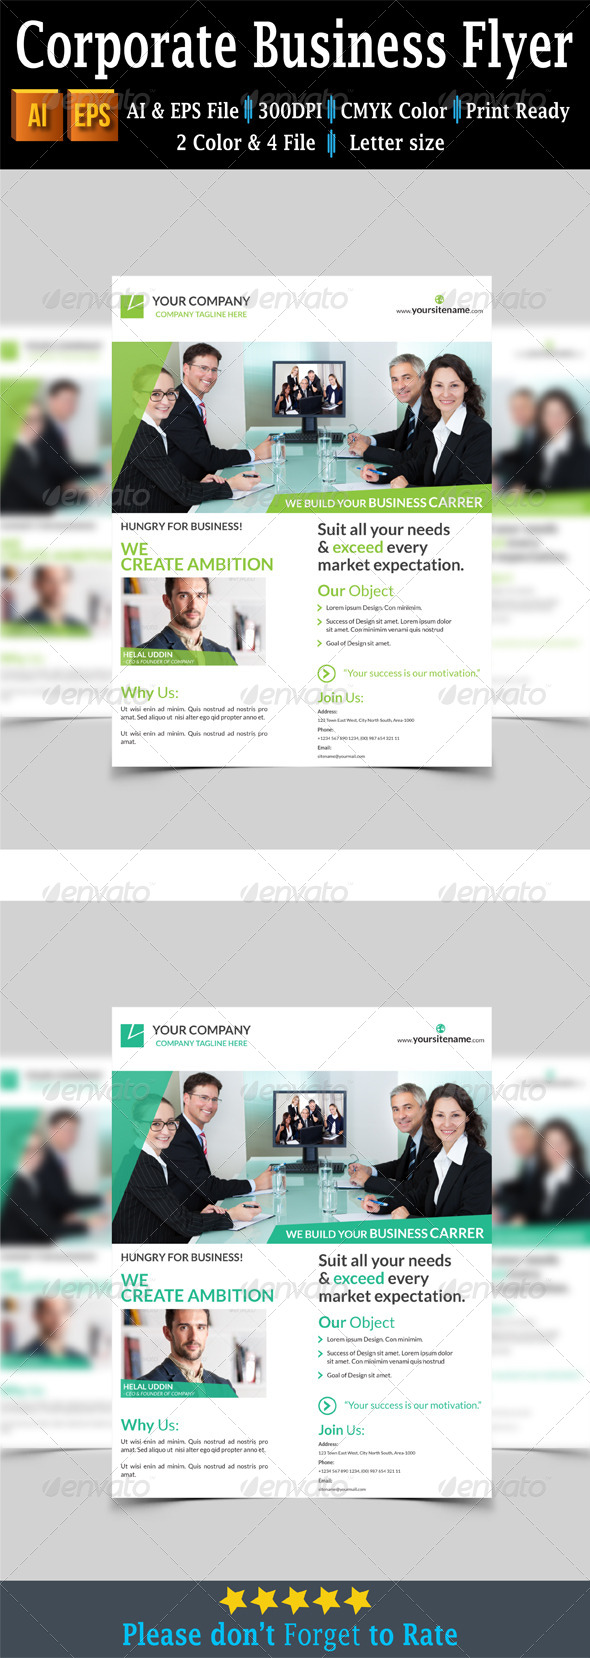 GraphicRiver Corporate Business Flyer 7740037